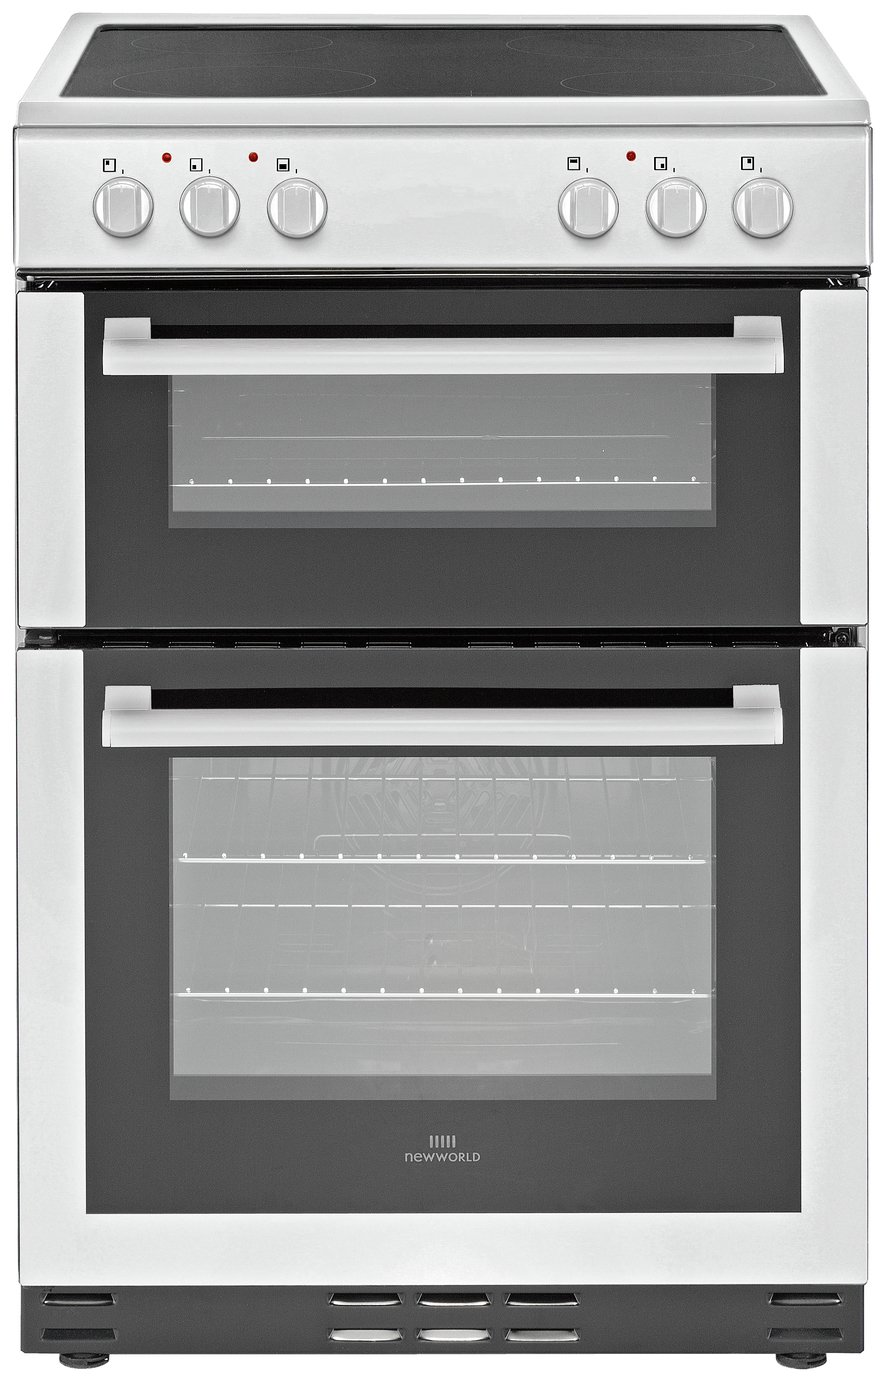 new world 60edoc electric cooker white. Black Bedroom Furniture Sets. Home Design Ideas